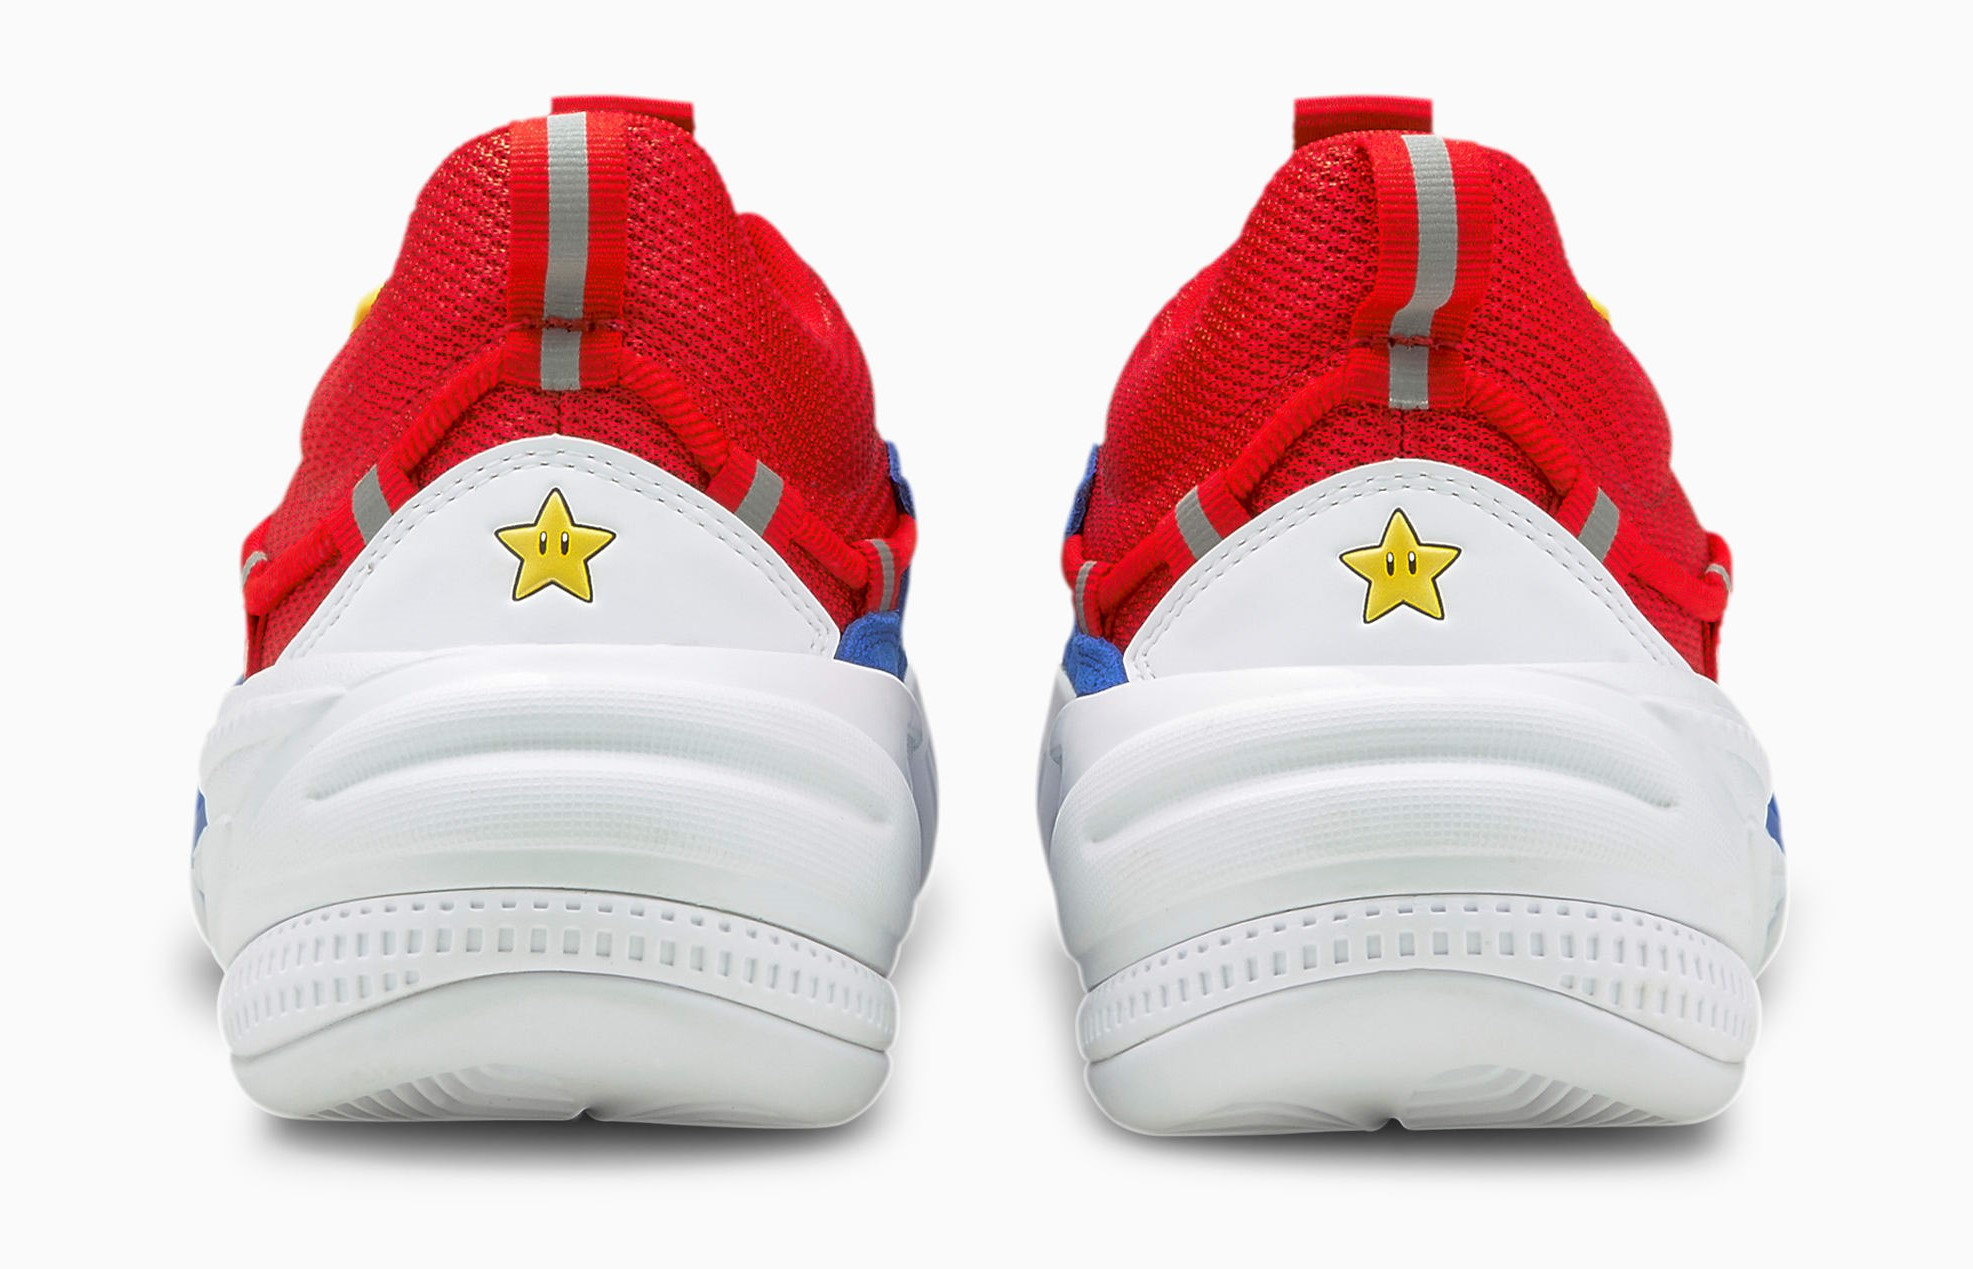 Puma RS-Dreamer sneakers inspired by Super Mario Bros. are out now 15